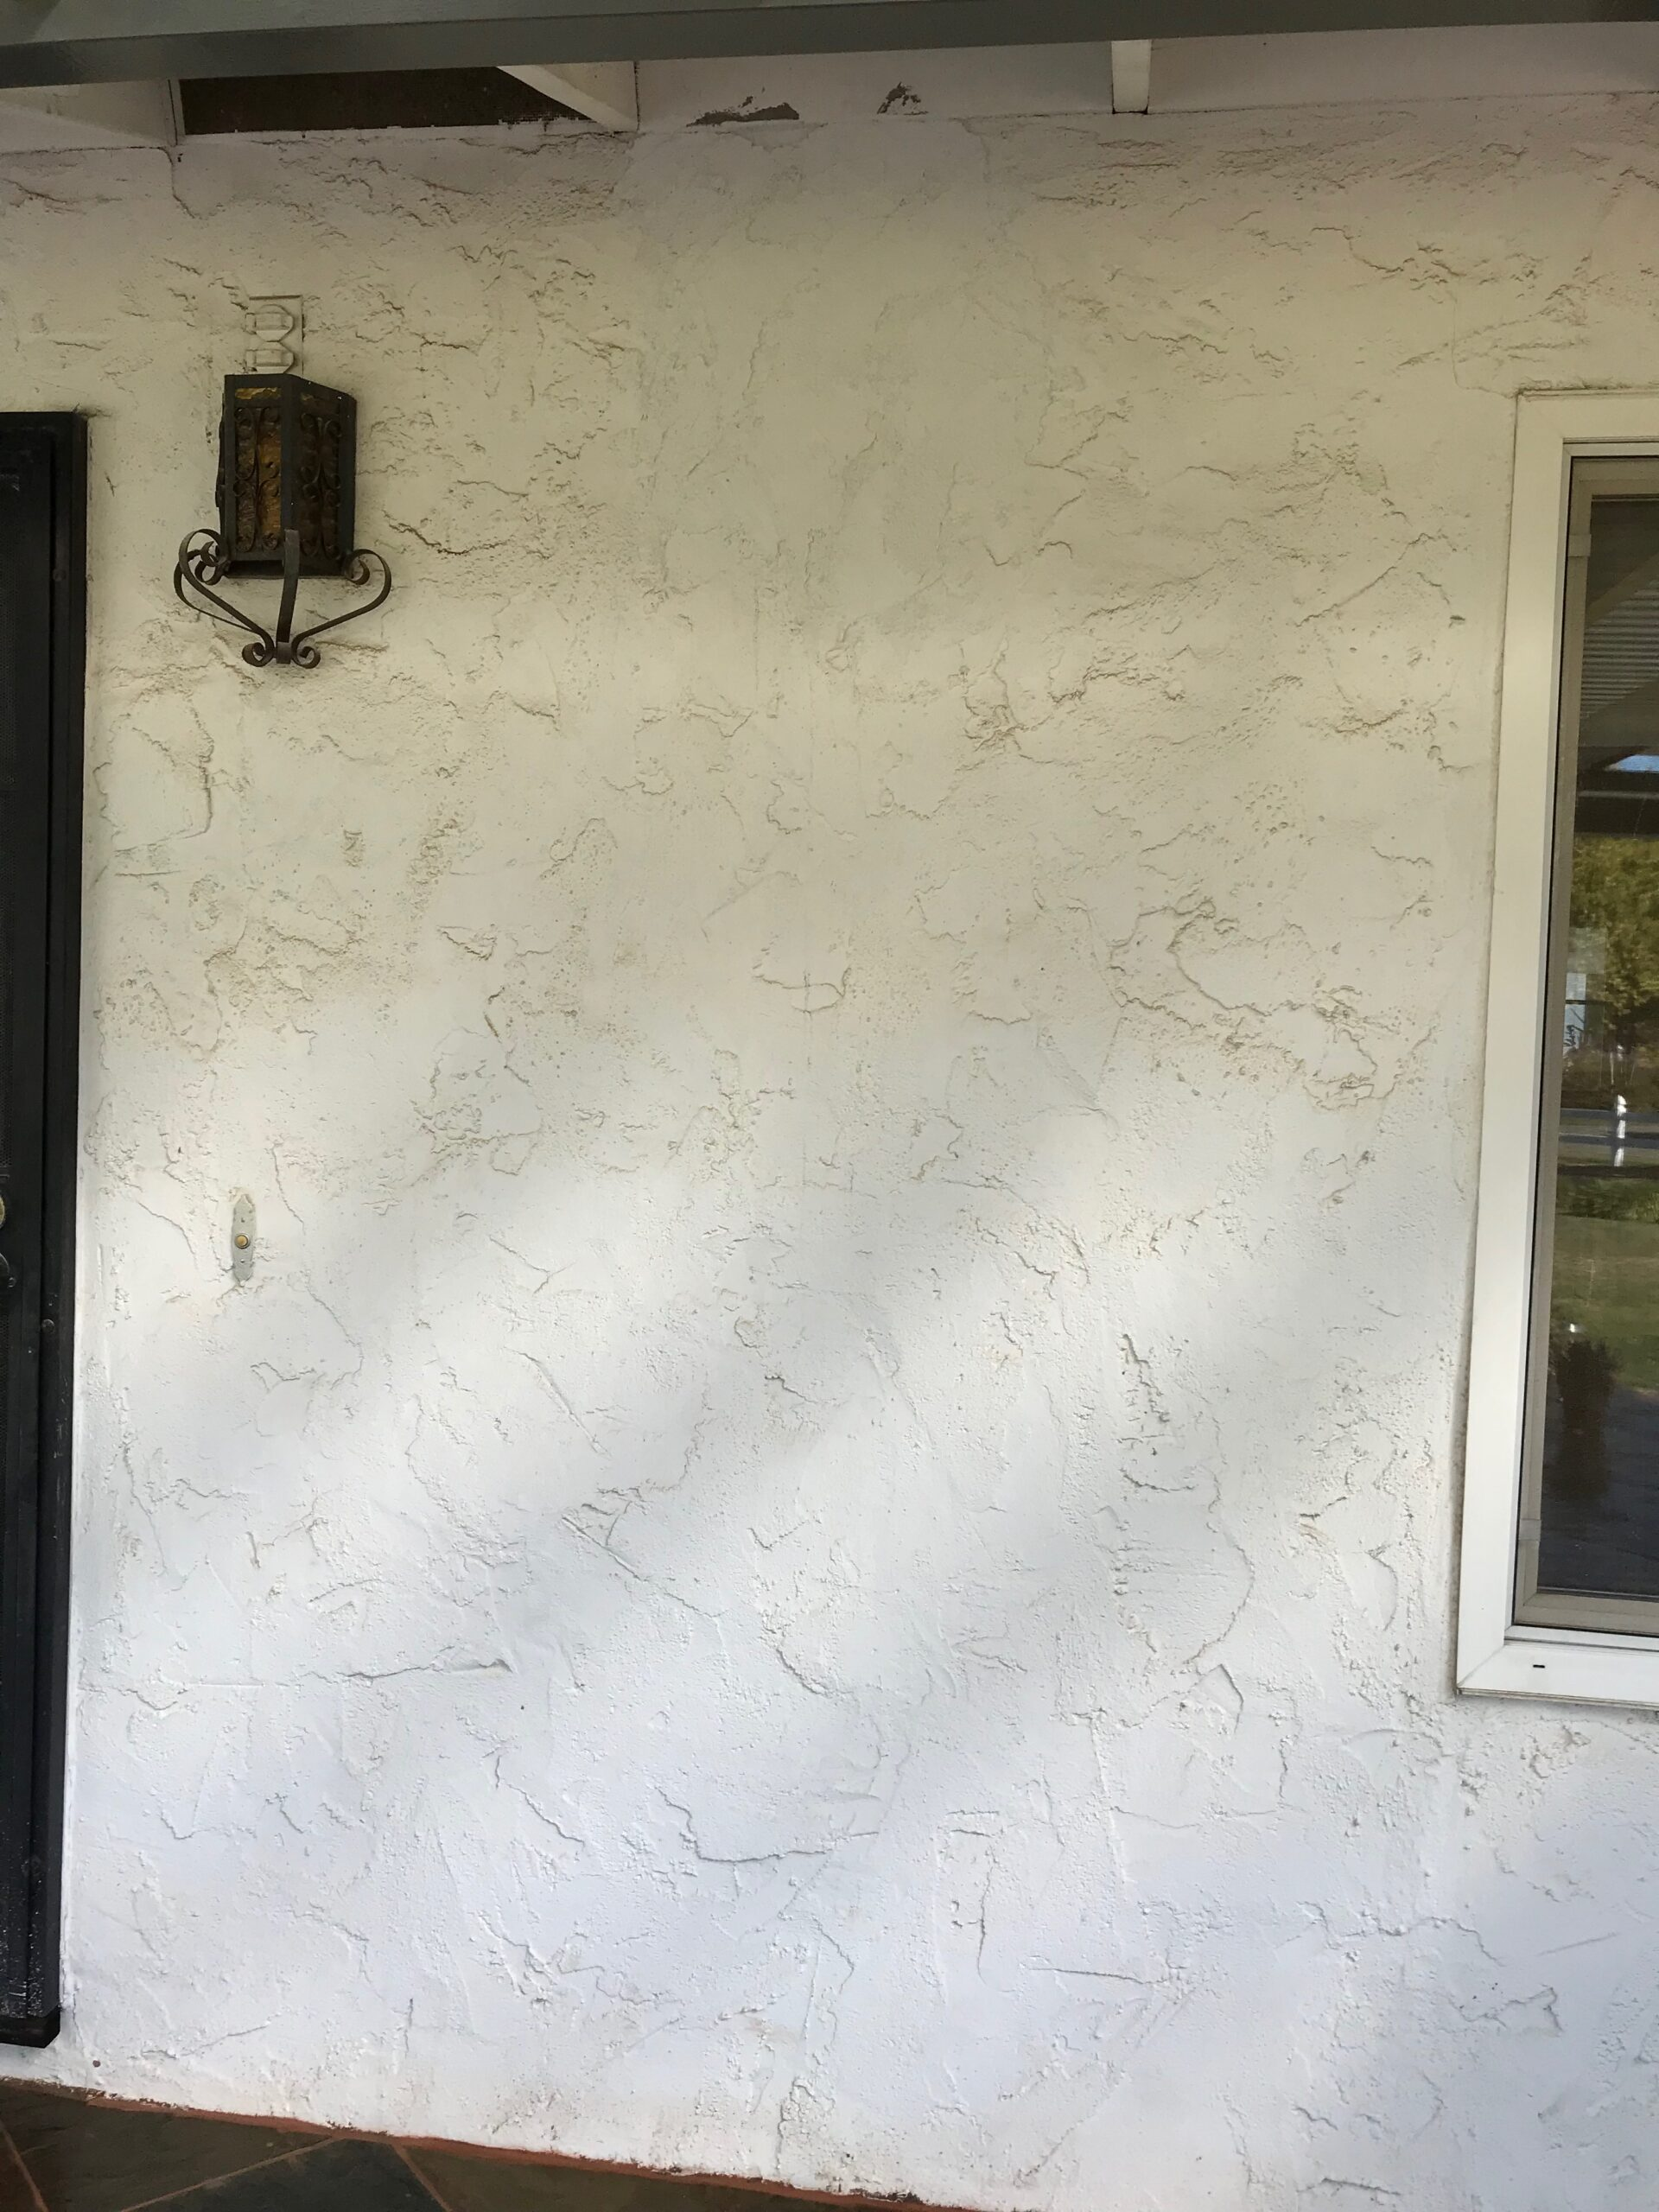 A picture of concrete wall in Cupertino.